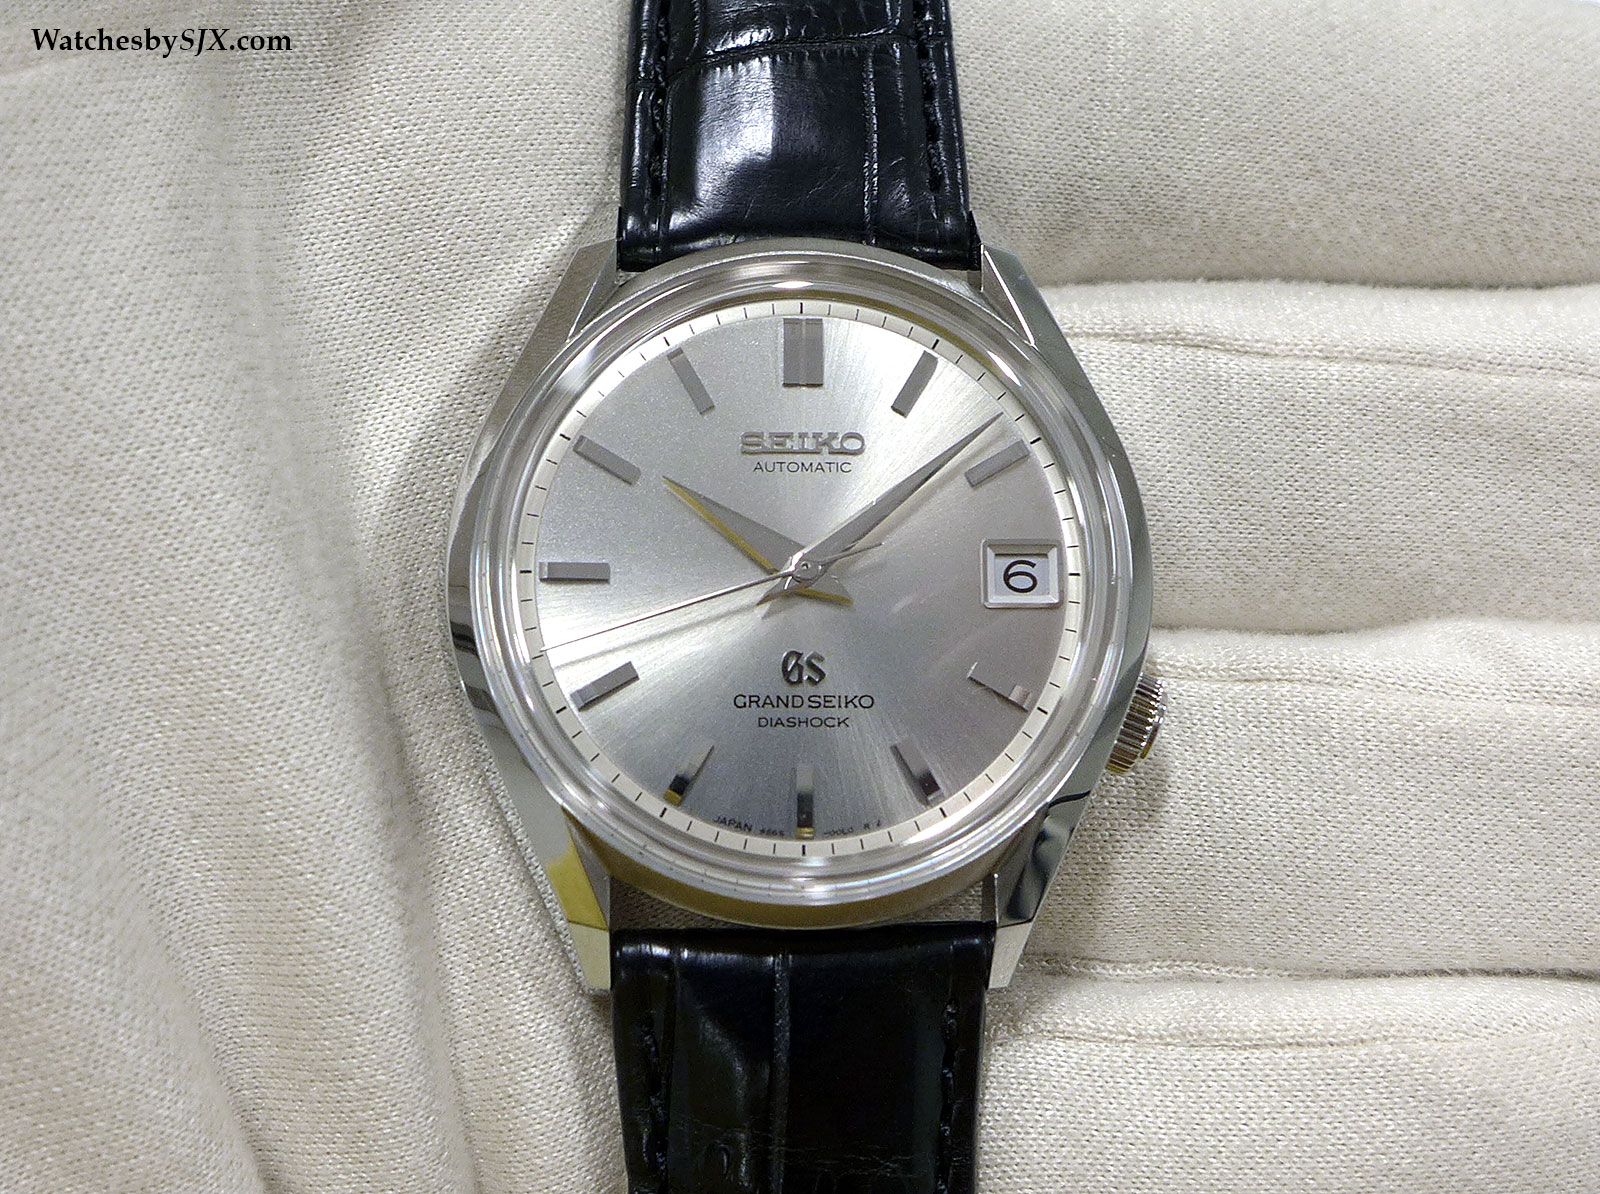 Hands-On With The Grand Seiko Historical Collection 62GS Reissue